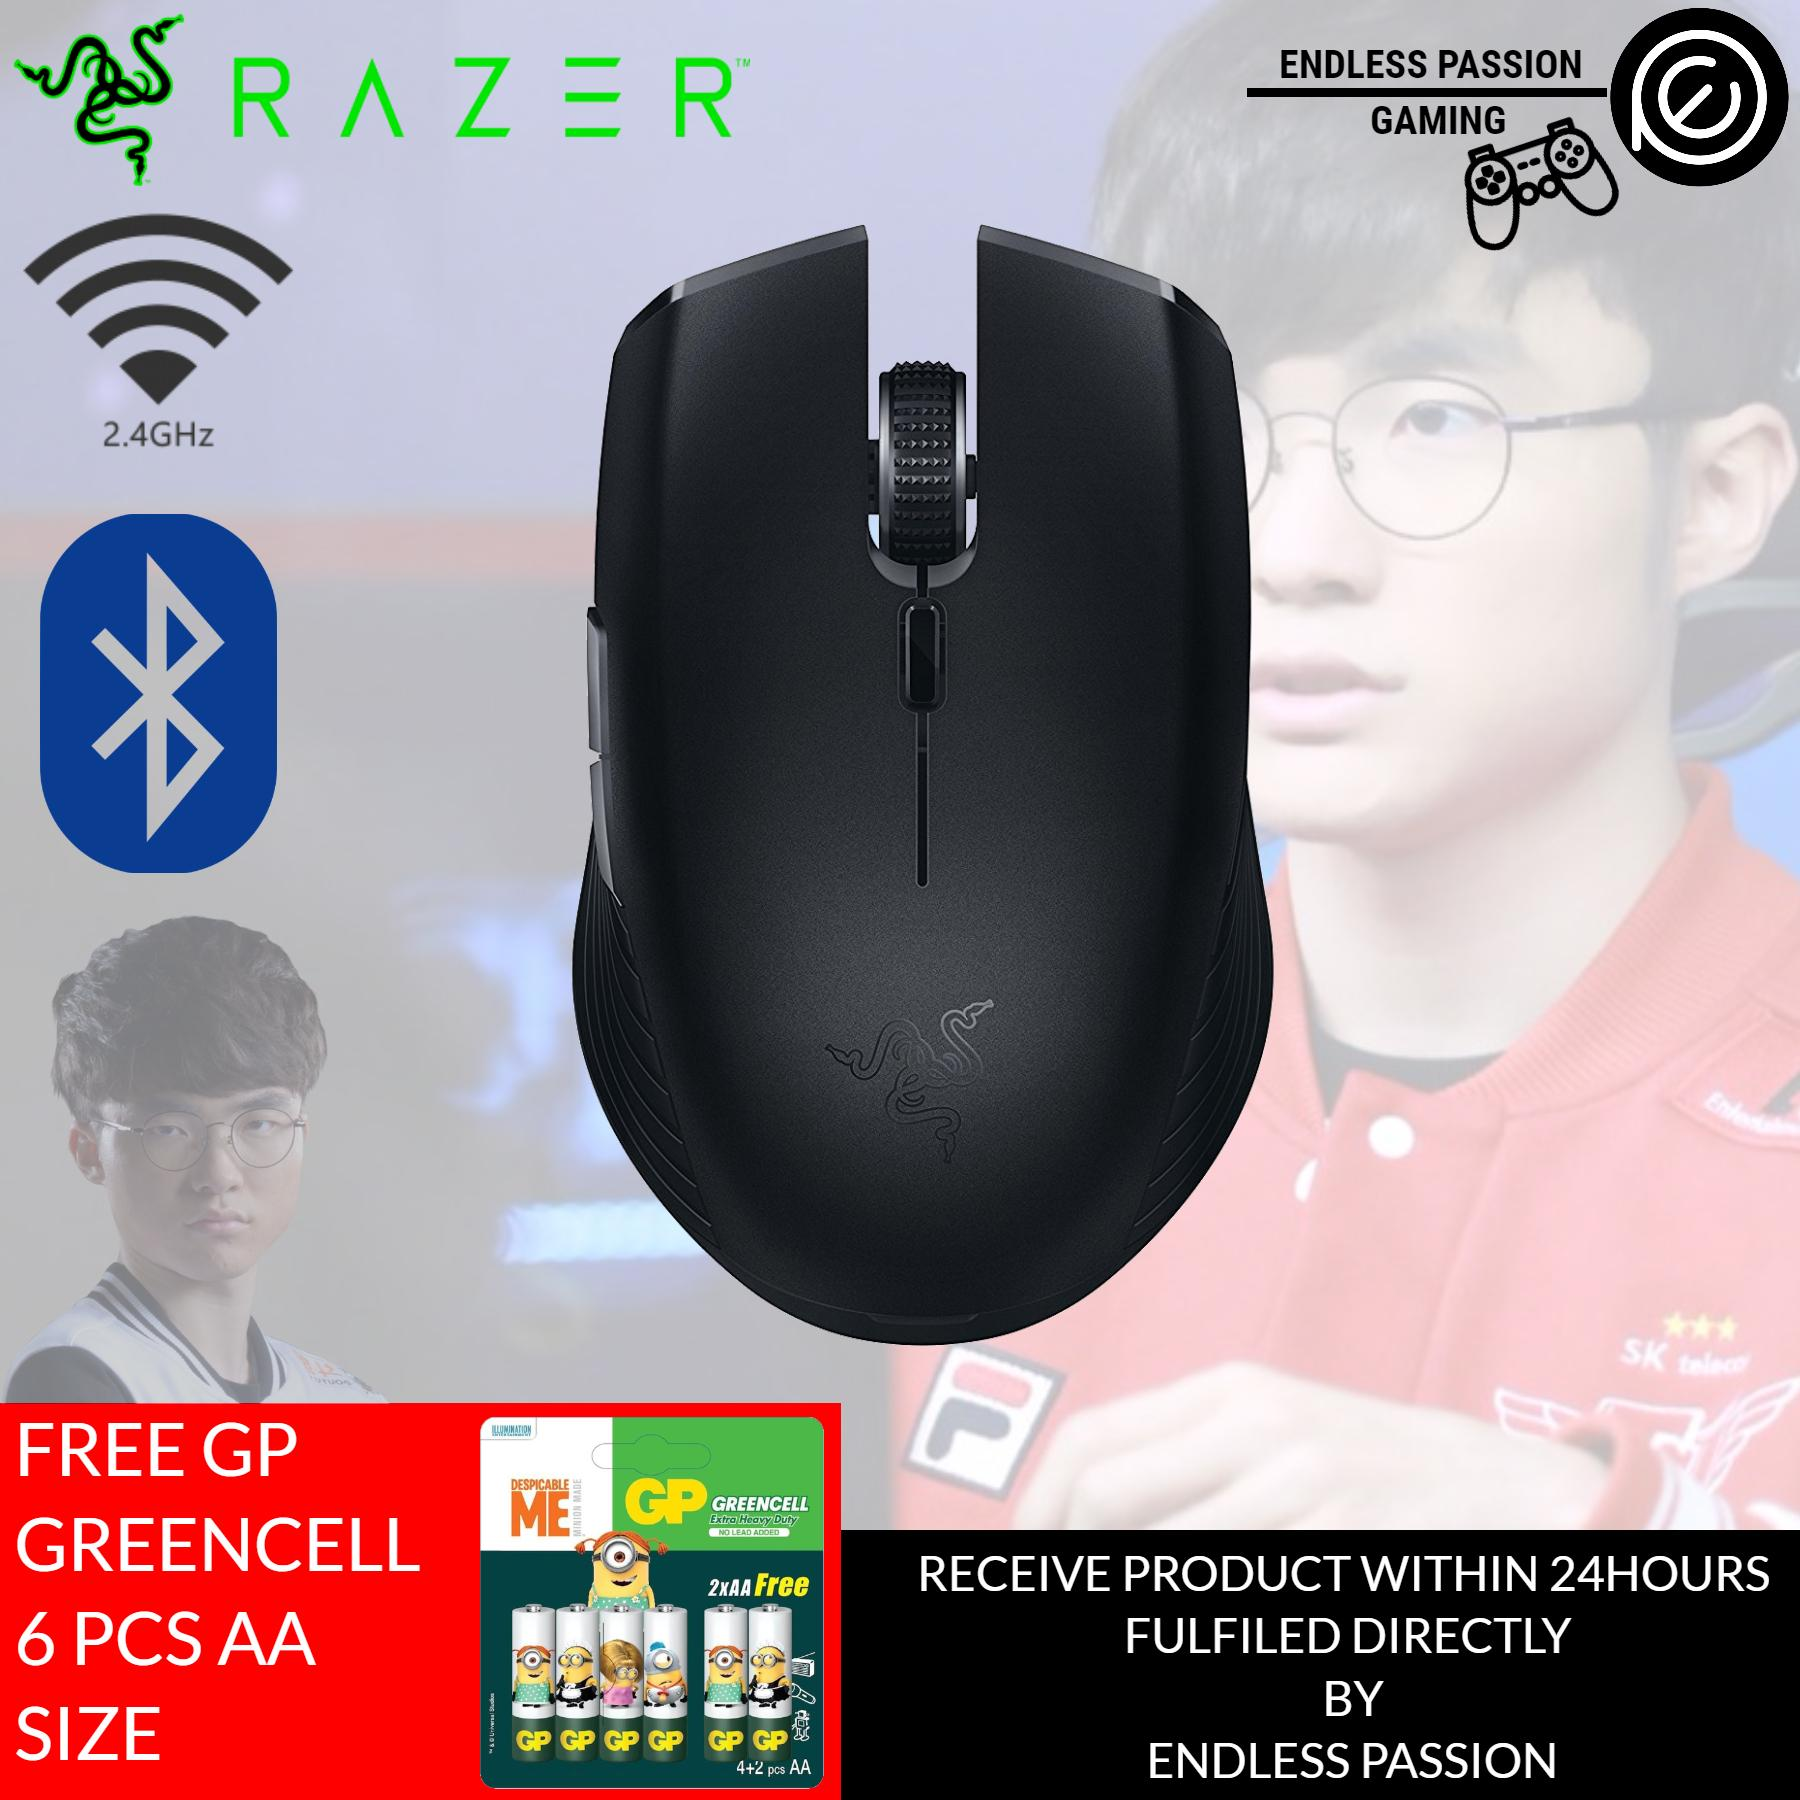 Razer Atheris - Ambidextrous Bluetooth Wireless Portable Gaming-Grade Mouse - 7,200 DPI Optical Sensor